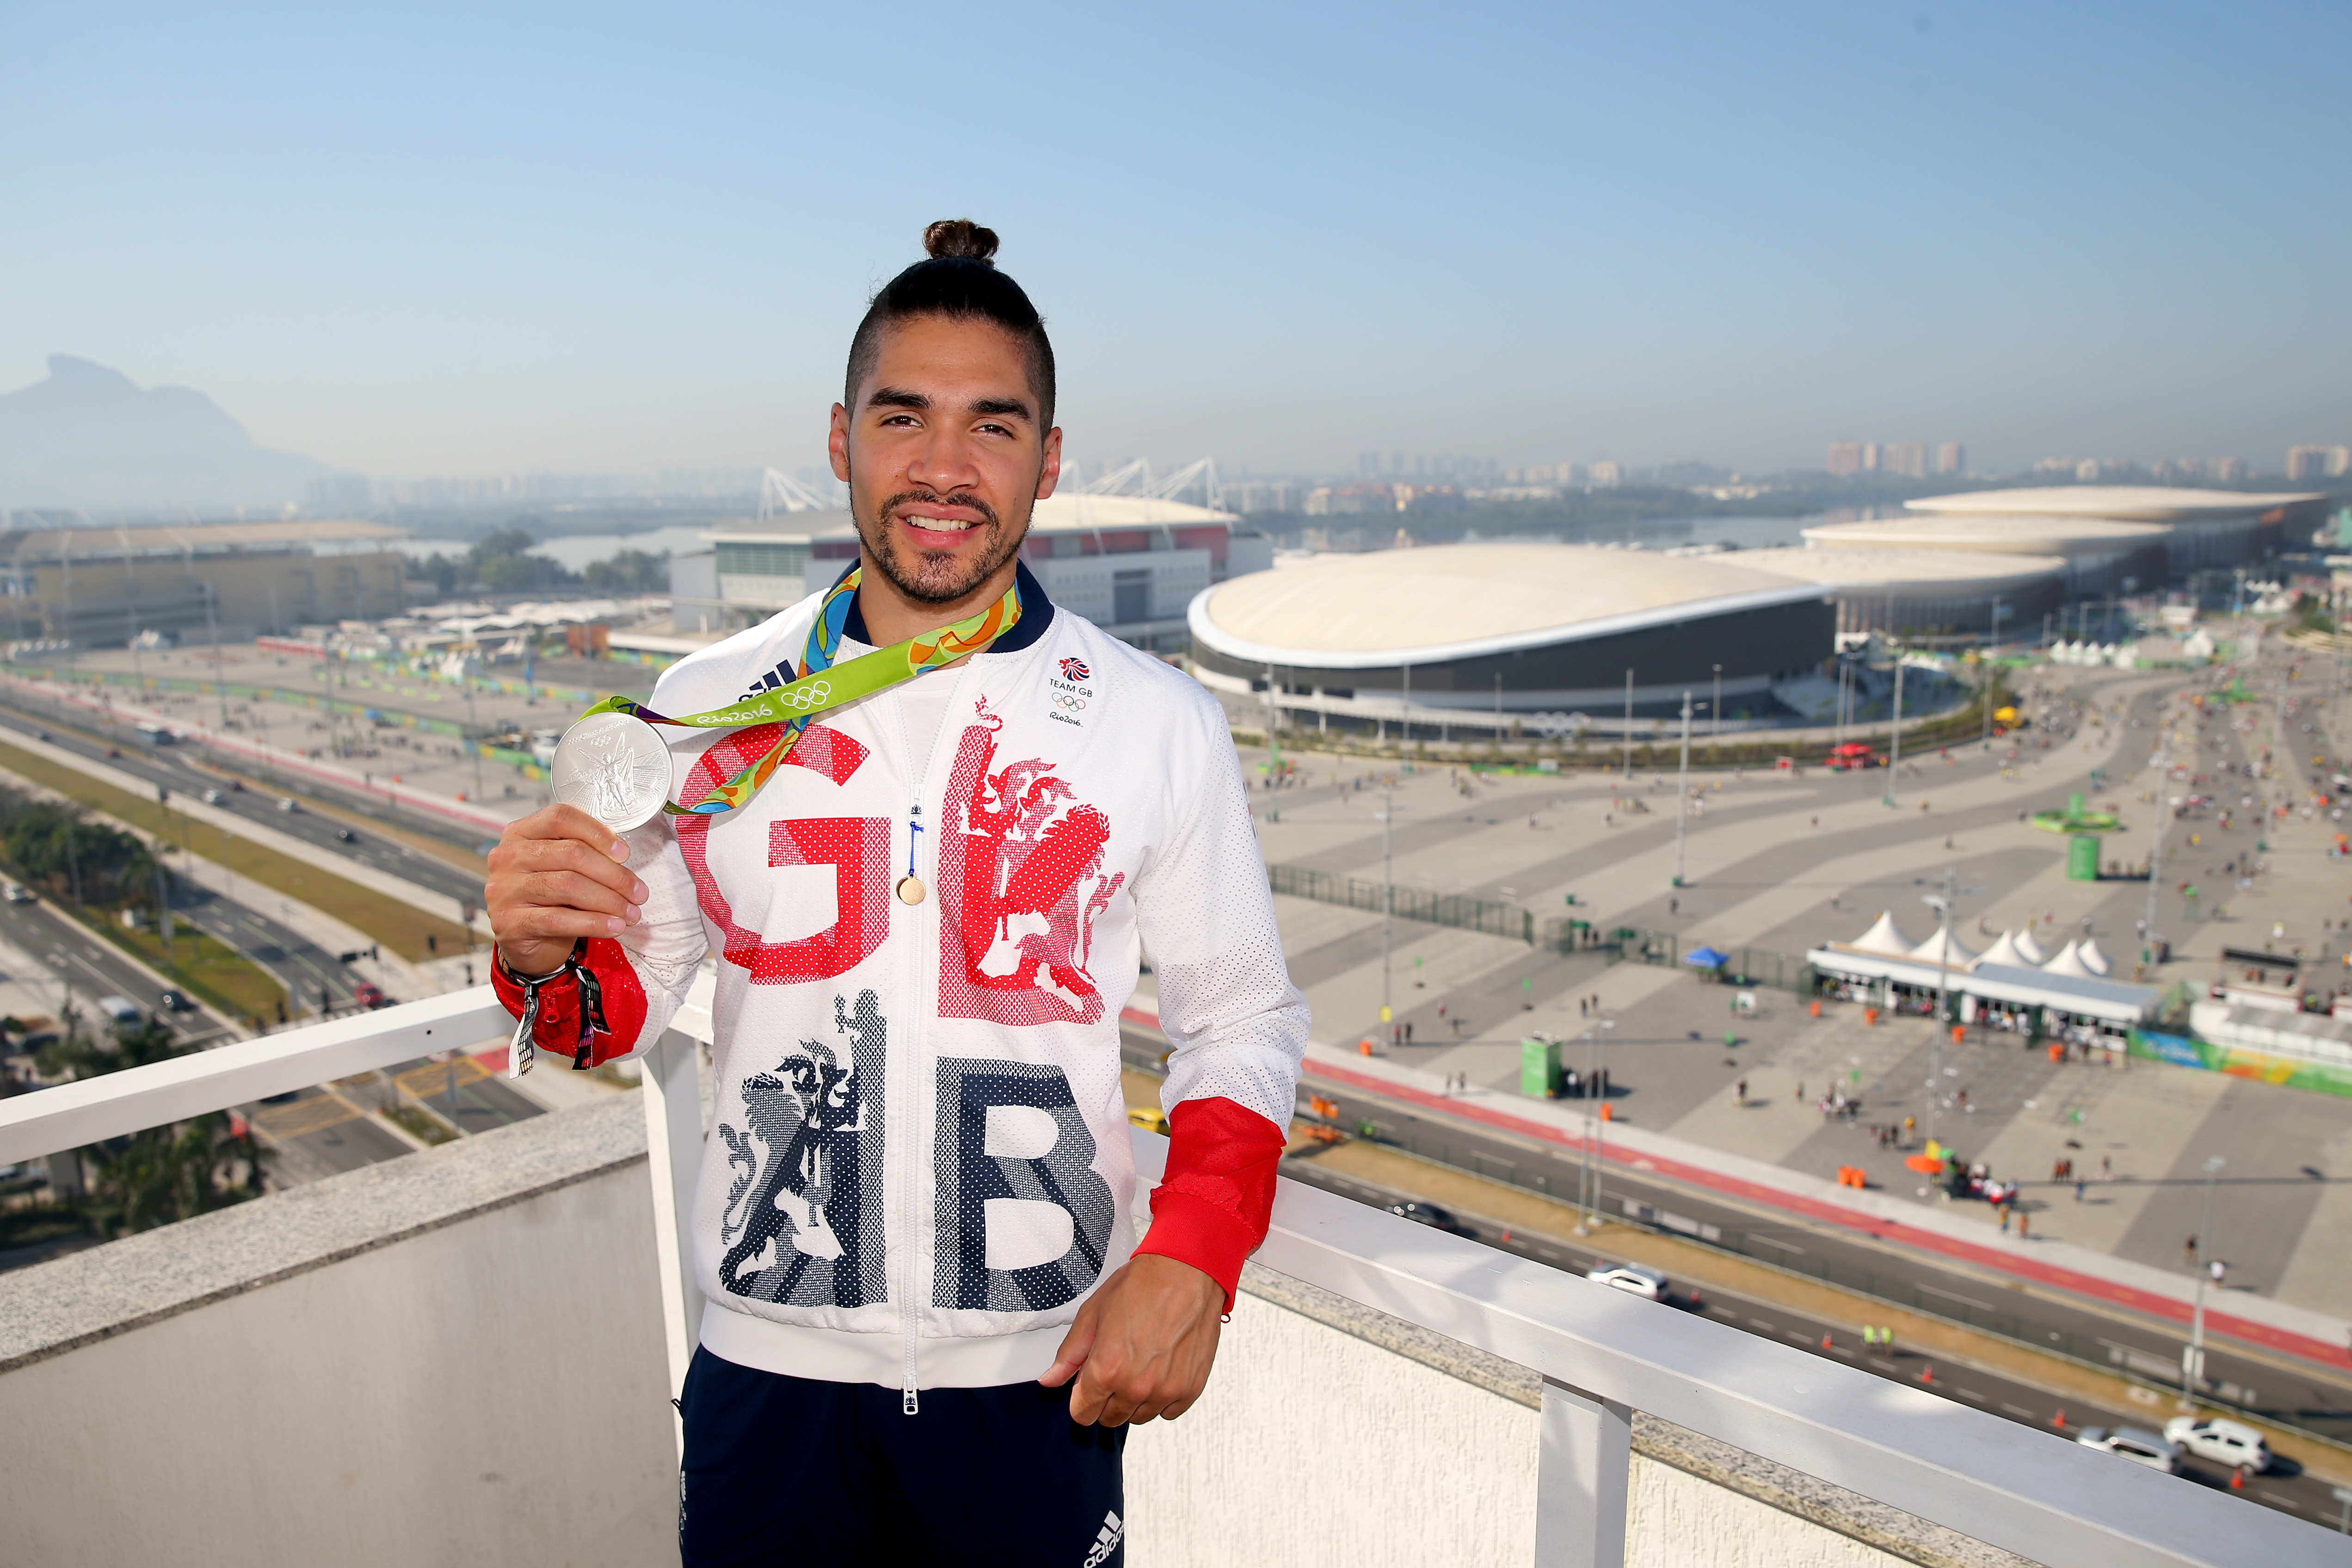 Louis Smith Rio 2016